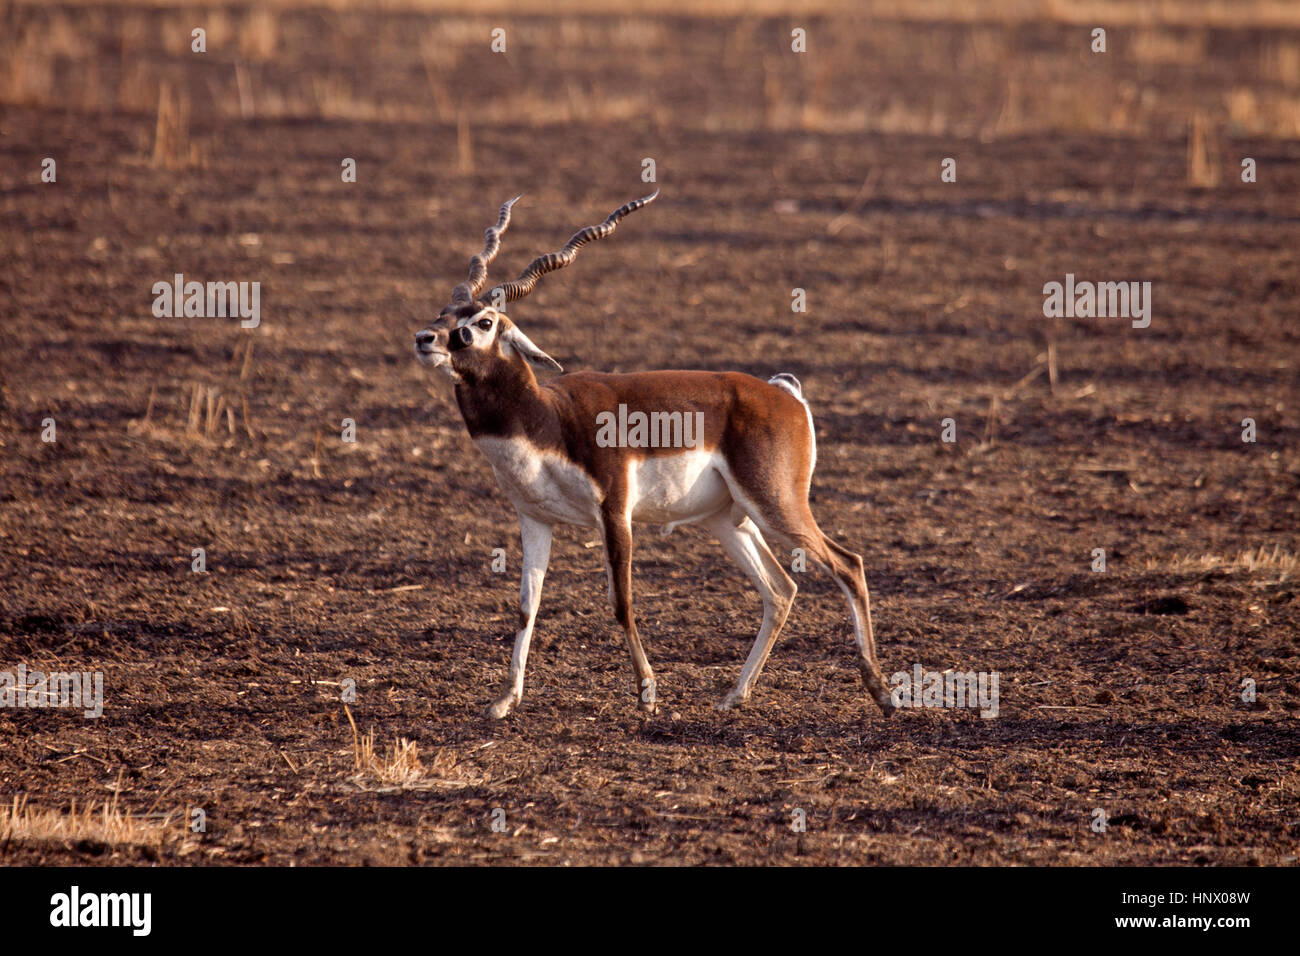 Black buck with prominant scent gland on side of face in stubble field in India - Stock Image